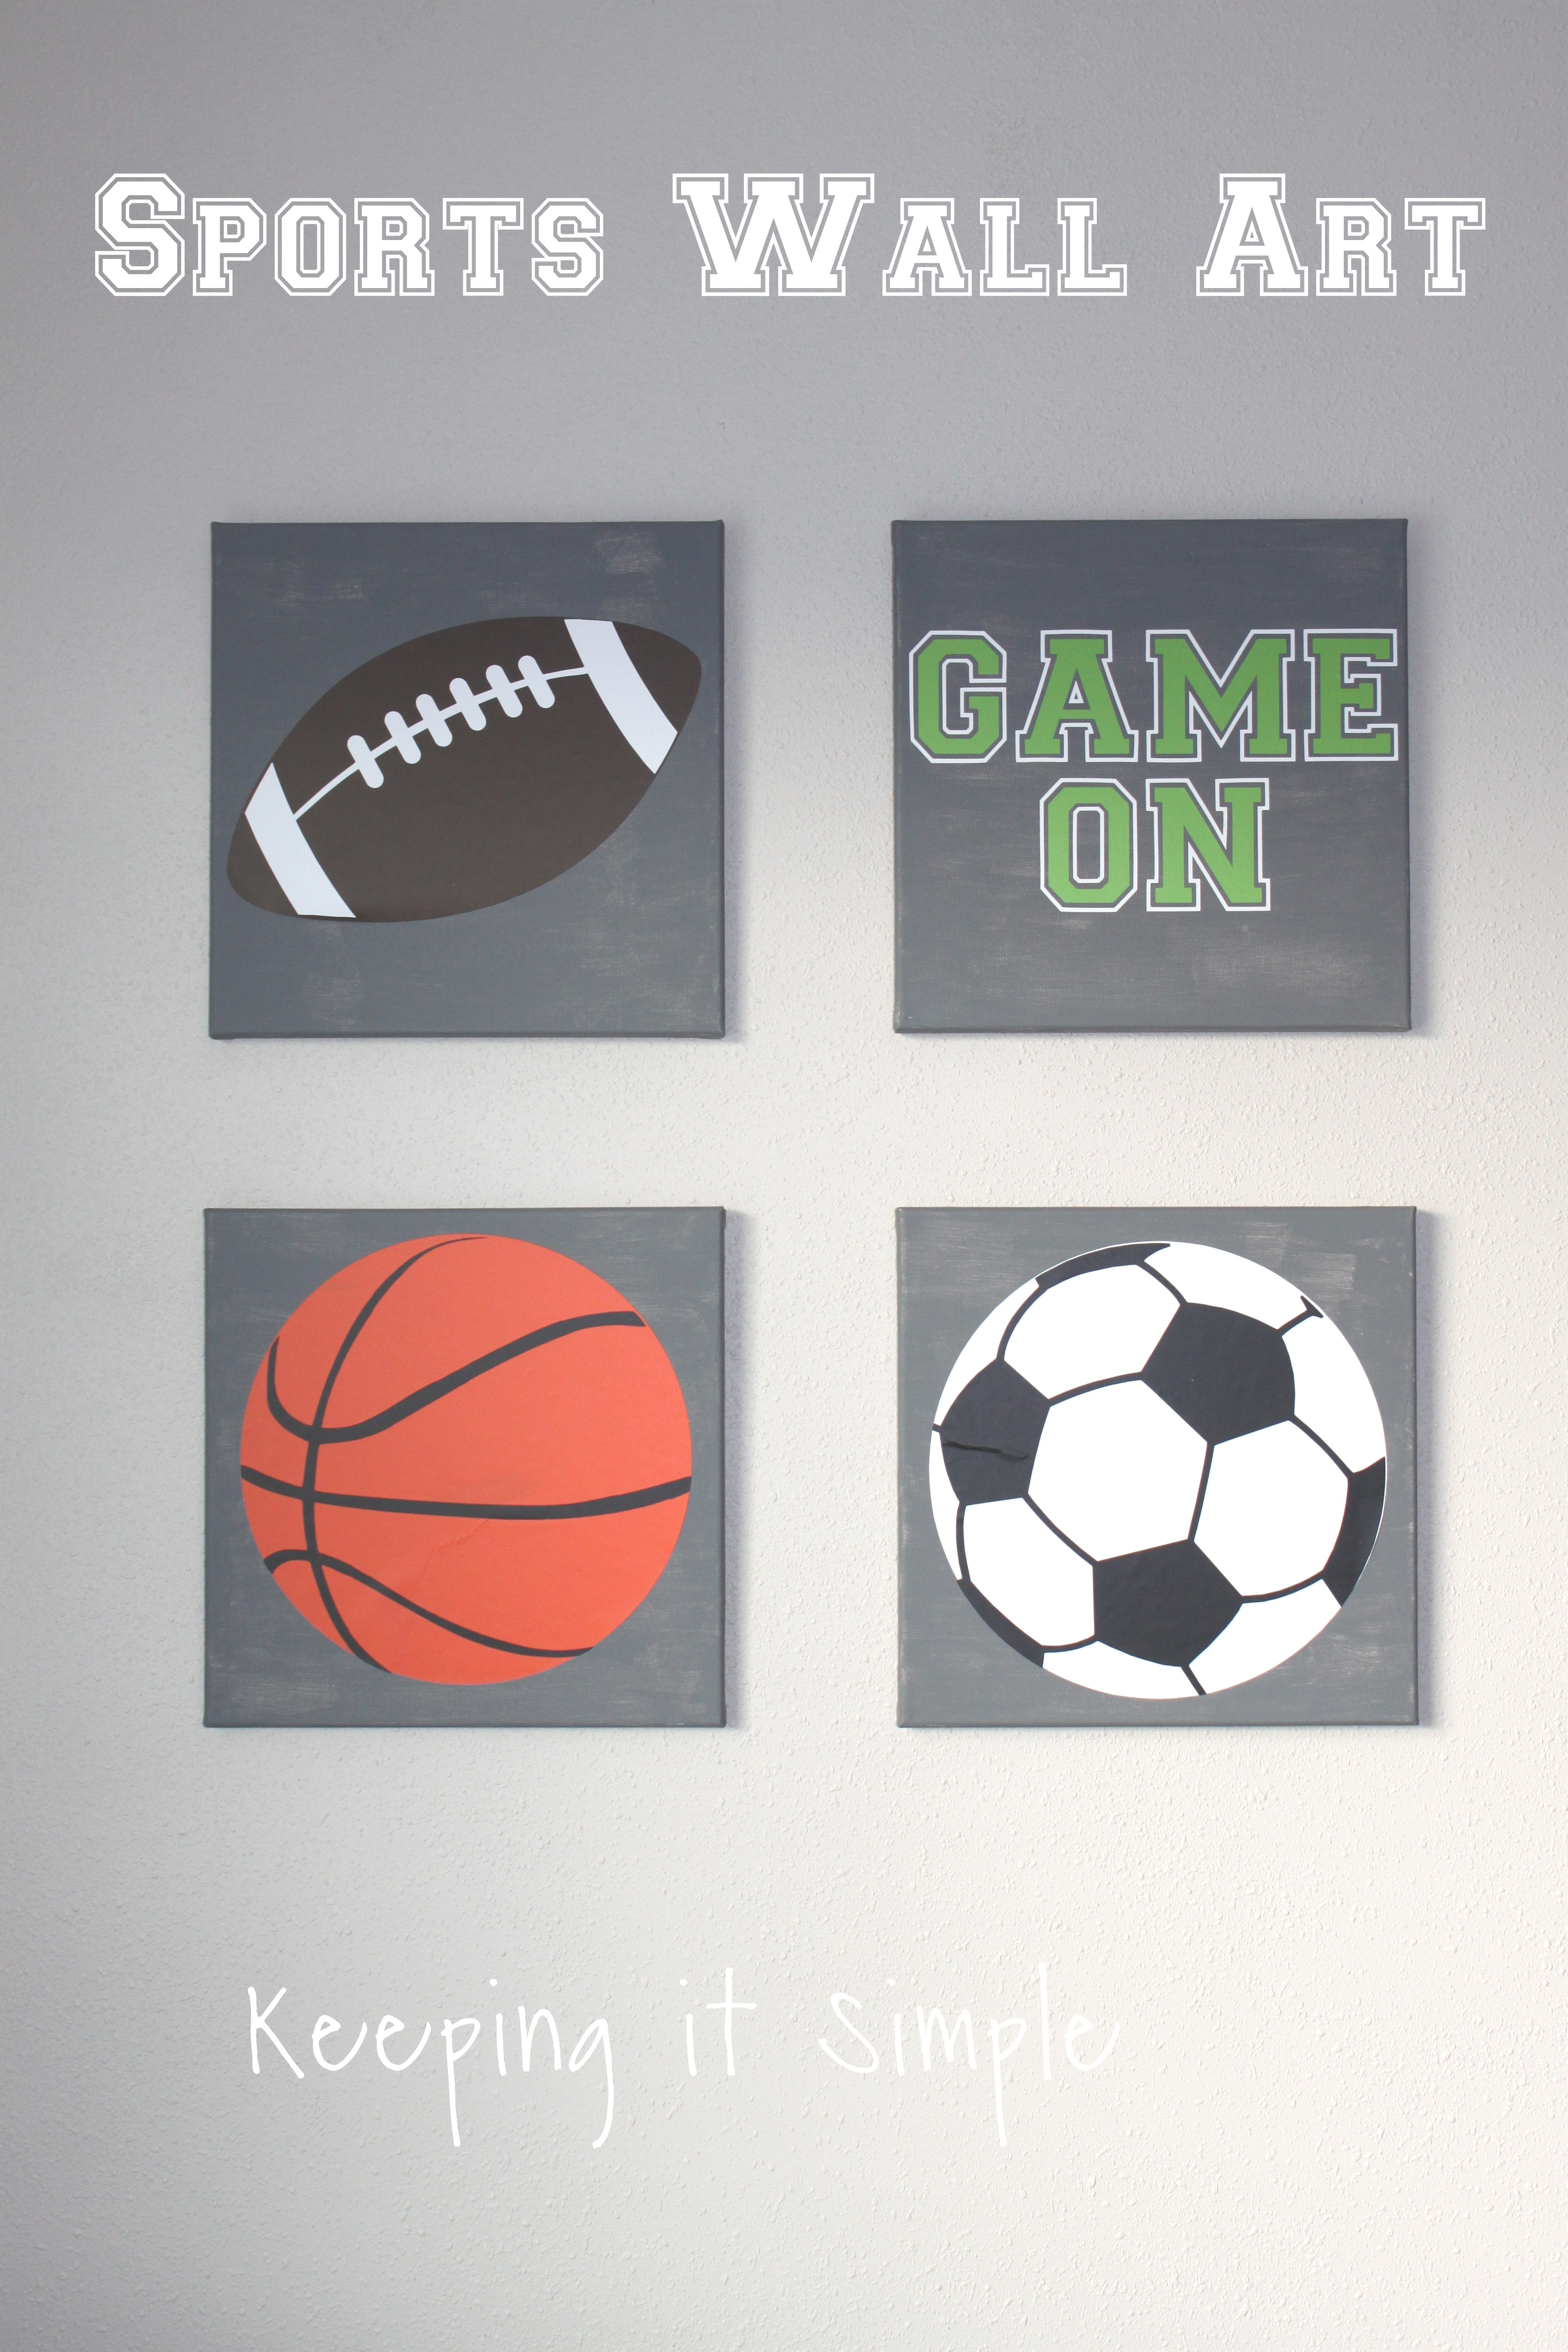 Sports Wall Art With SVG Cut File Keeping It Simple